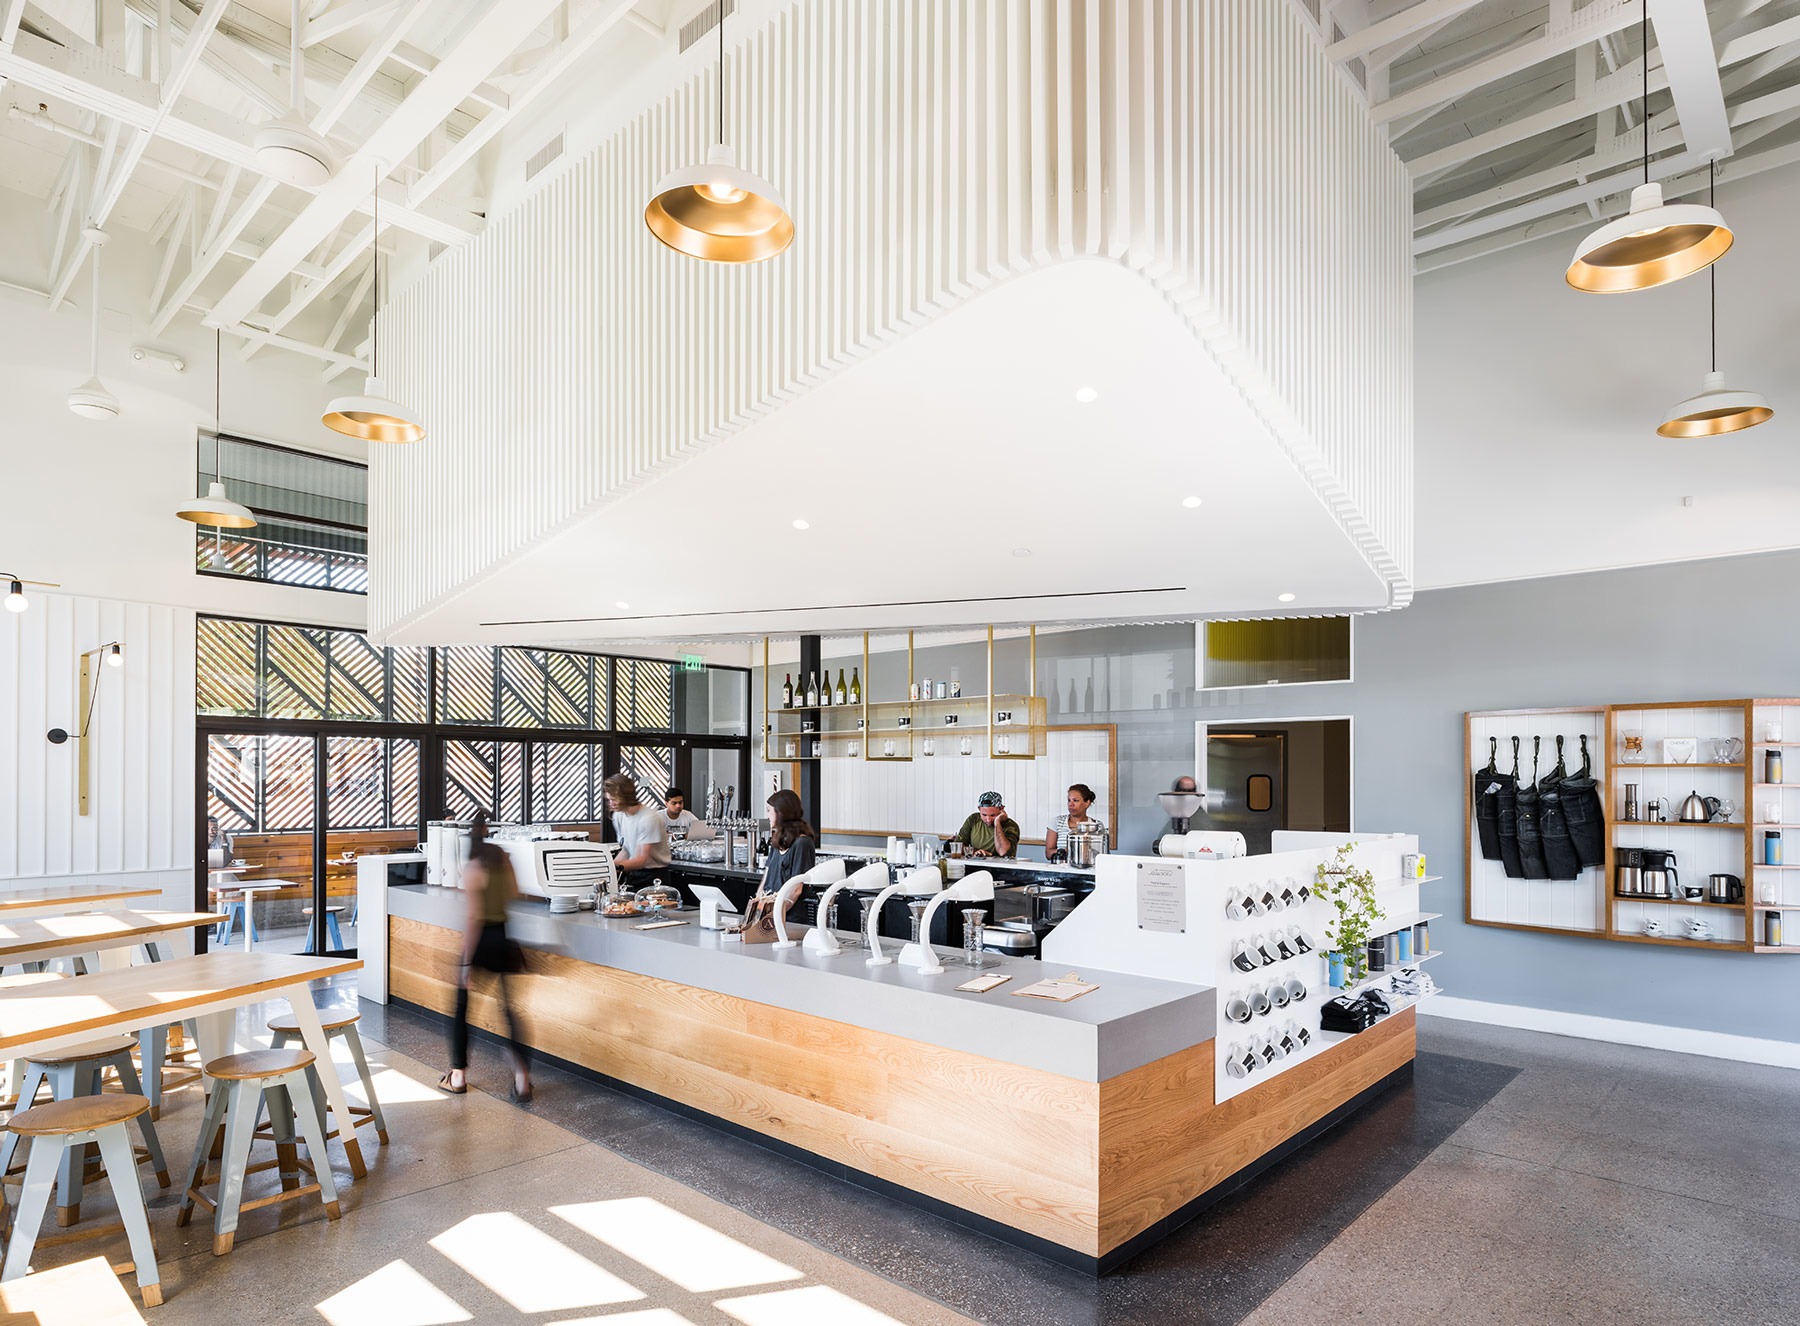 OFFICIAL unveils Houndstooth Coffee and Jettison a cafe